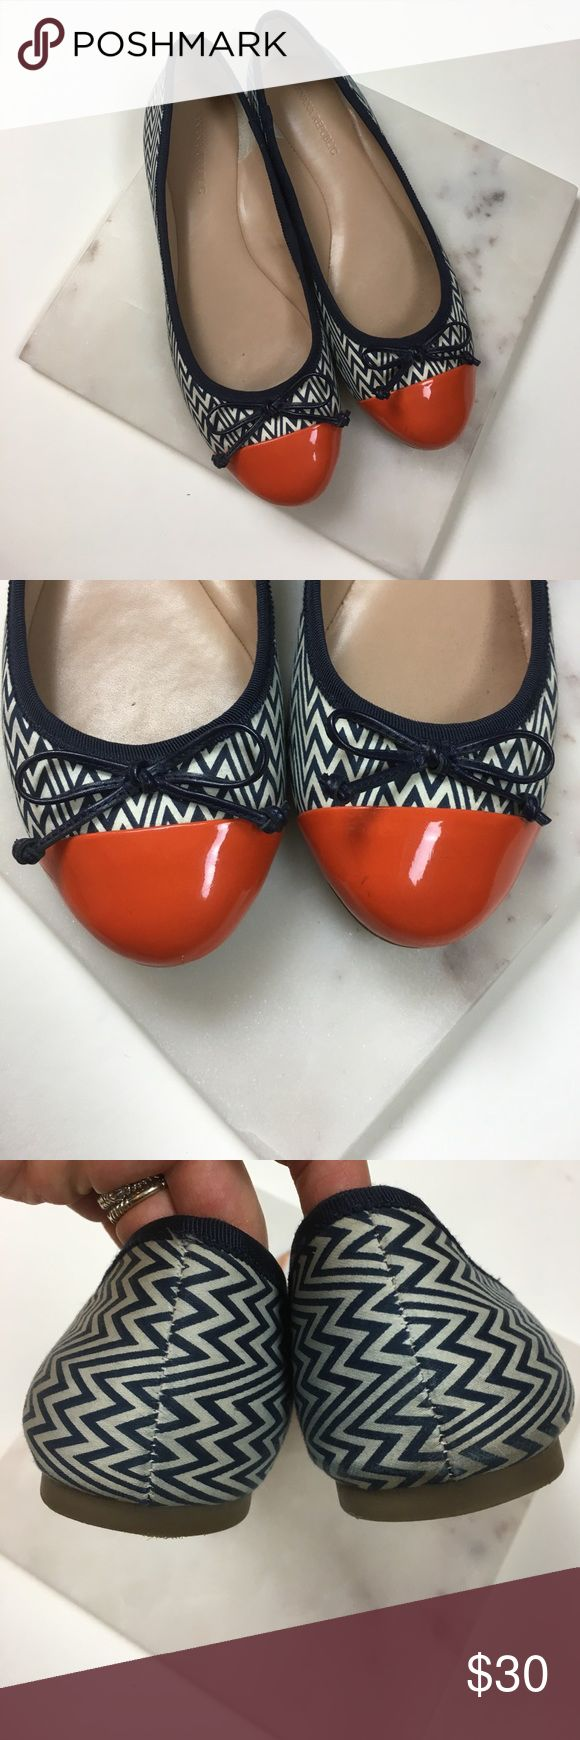 Banana Republic Chevron Striped Ballet Flats - 8M So cute and perfect for any occasion! Banana Republic brand, size 8 M. Gently used with a few scuffs and light wear as pictured. There is a slight sharpie mark on each sole as well. 6feb17bcko Banana Republic Shoes Flats & Loafers